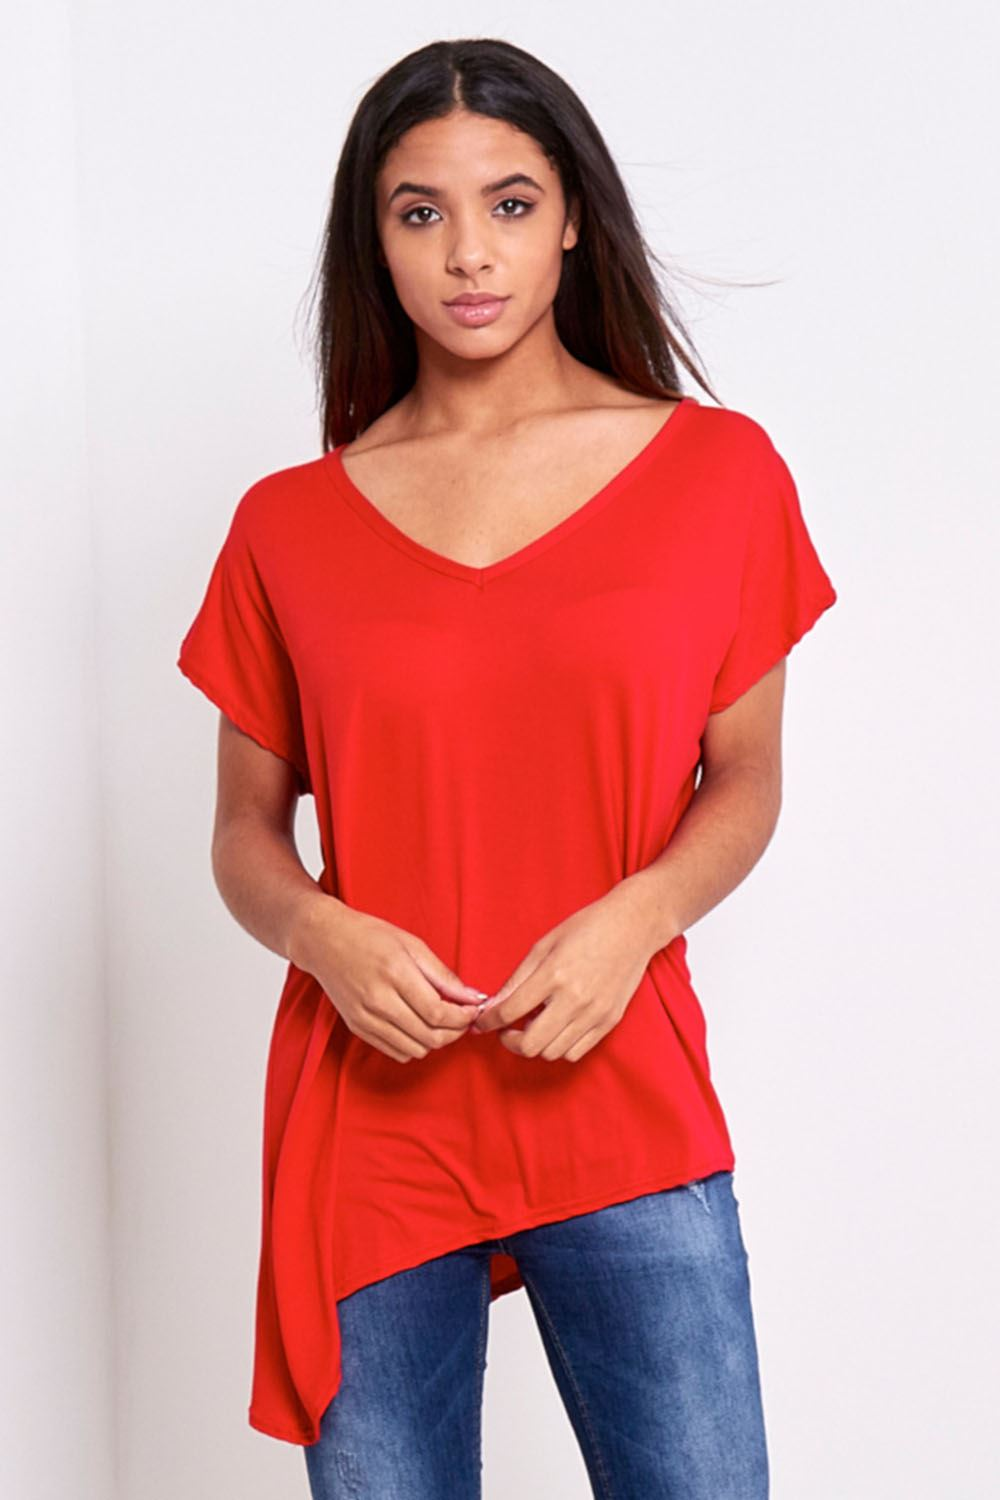 Find great deals on eBay for Baggy T Shirts Womens in Tops and Blouses for All Women. Shop with confidence.